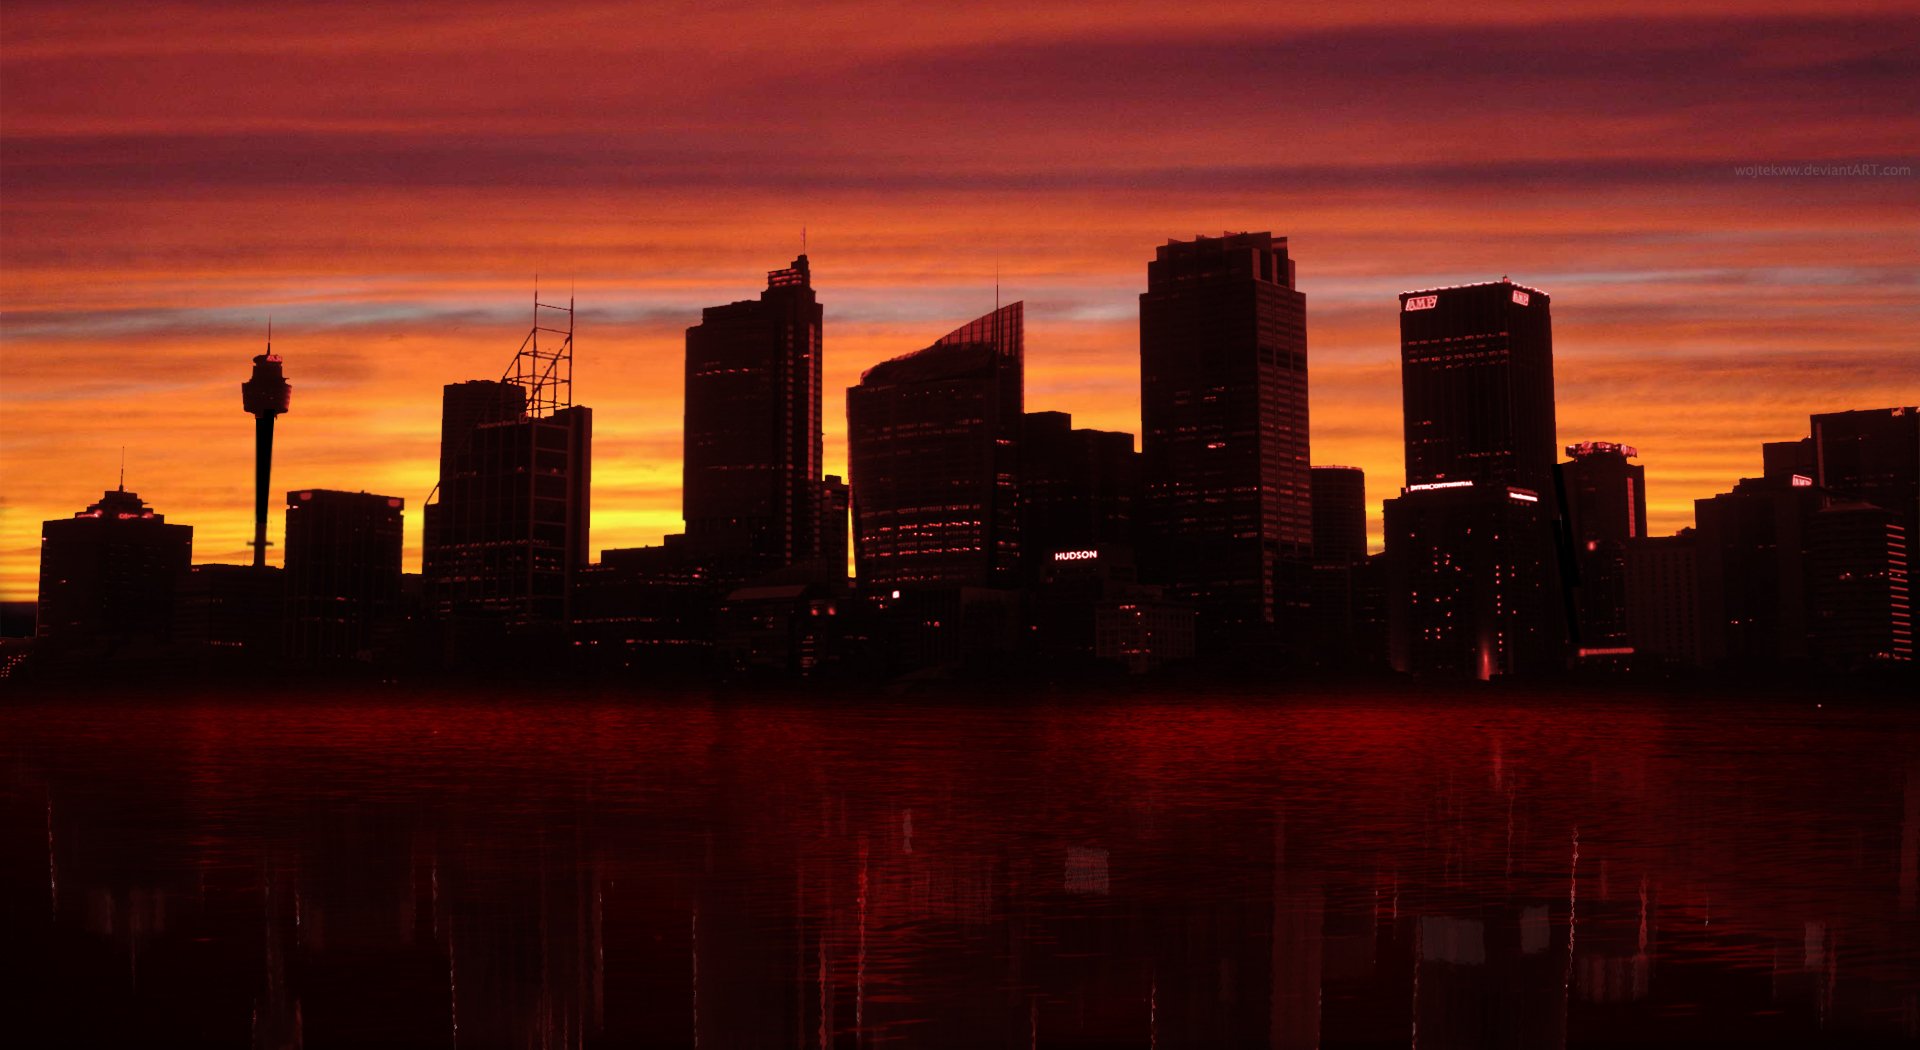 sunset cityscapes urban cities ua